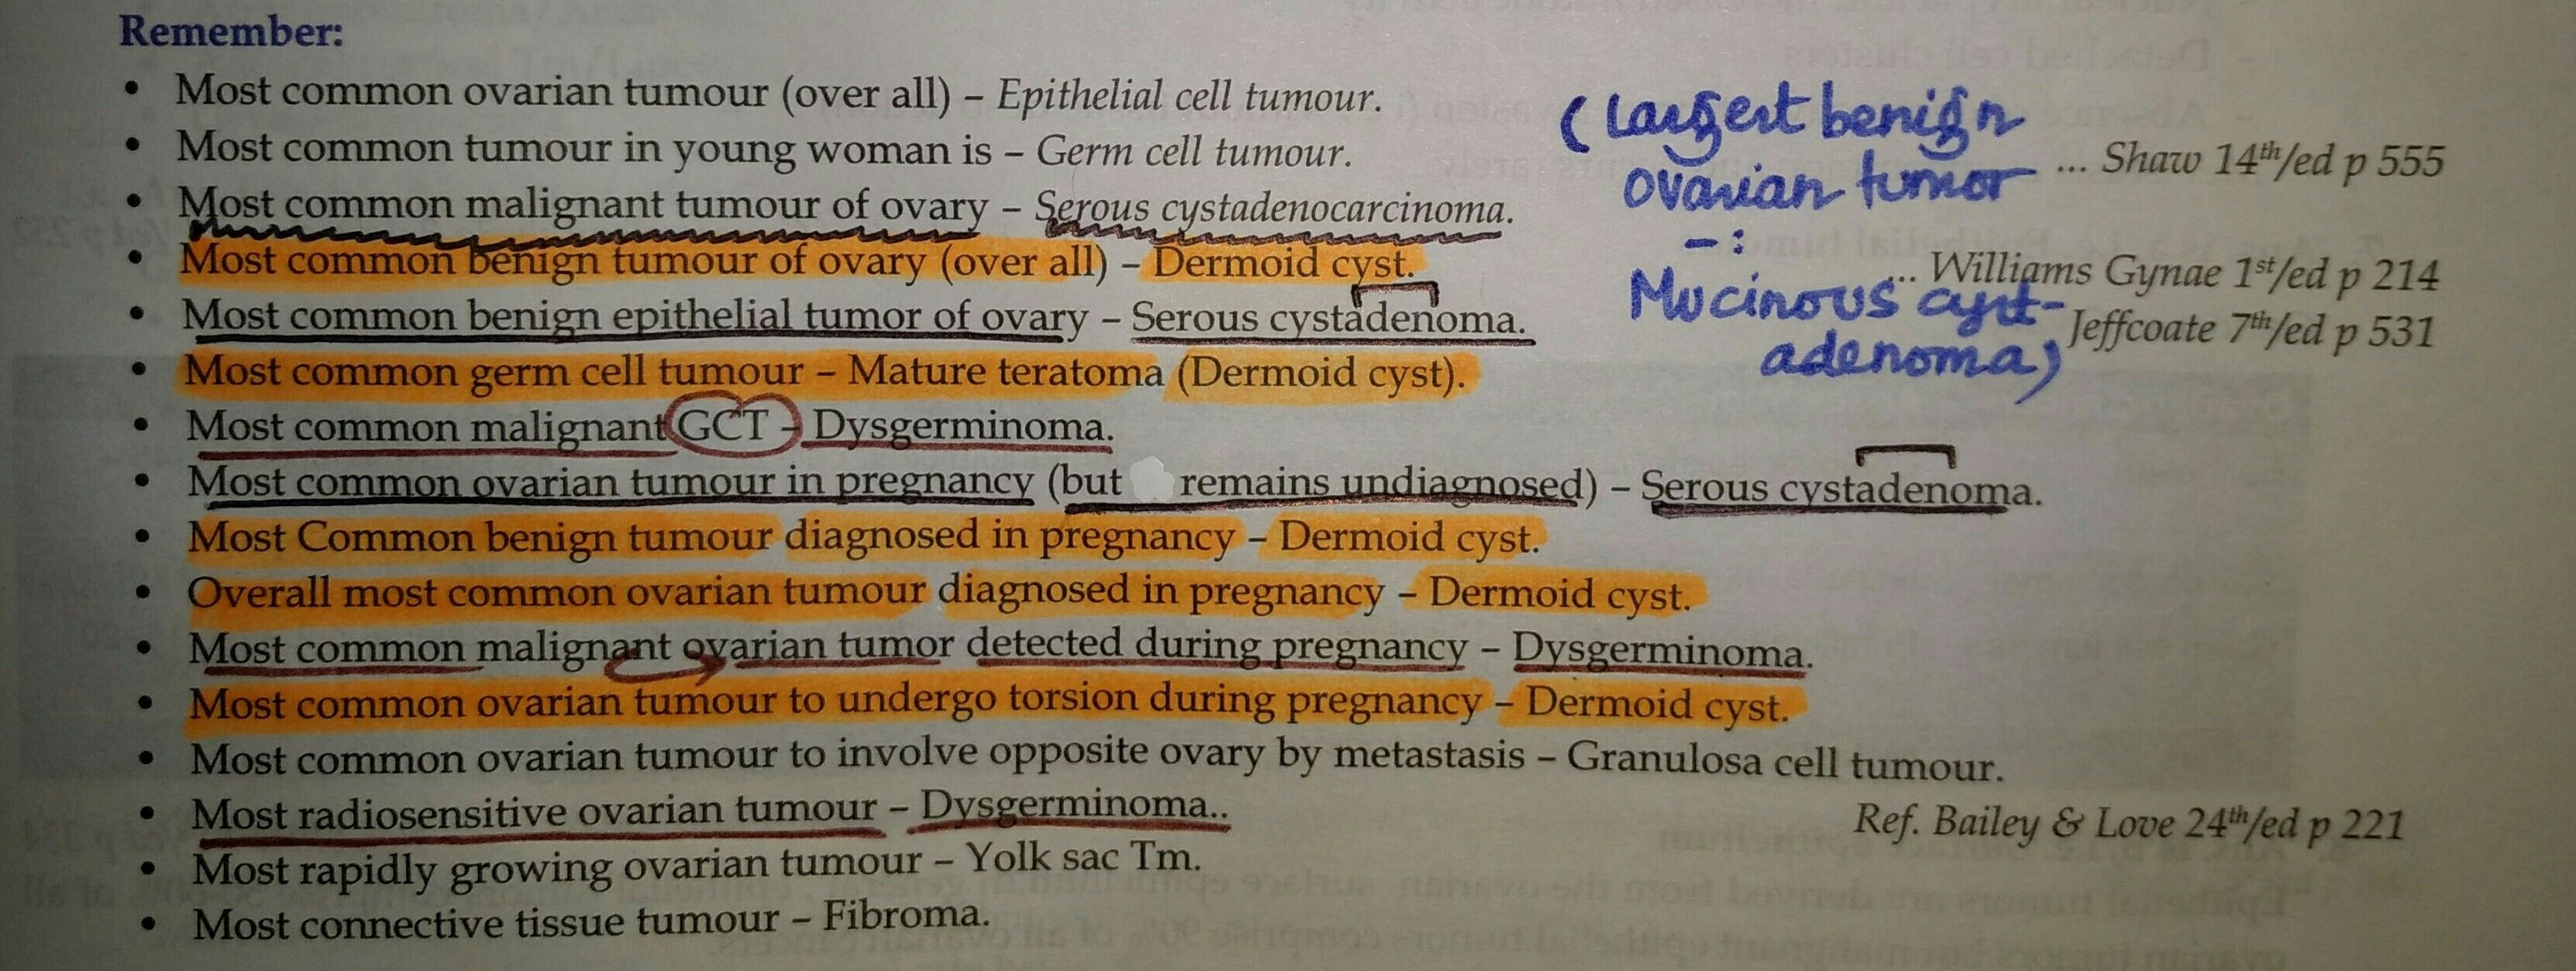 Ovarian Tumors 02 Ovary Note Most Common Tumor In Young Female 20 Yr Age Group Germ Cell Tumor Ovarian Tumor Ovarian Dermoid Cyst